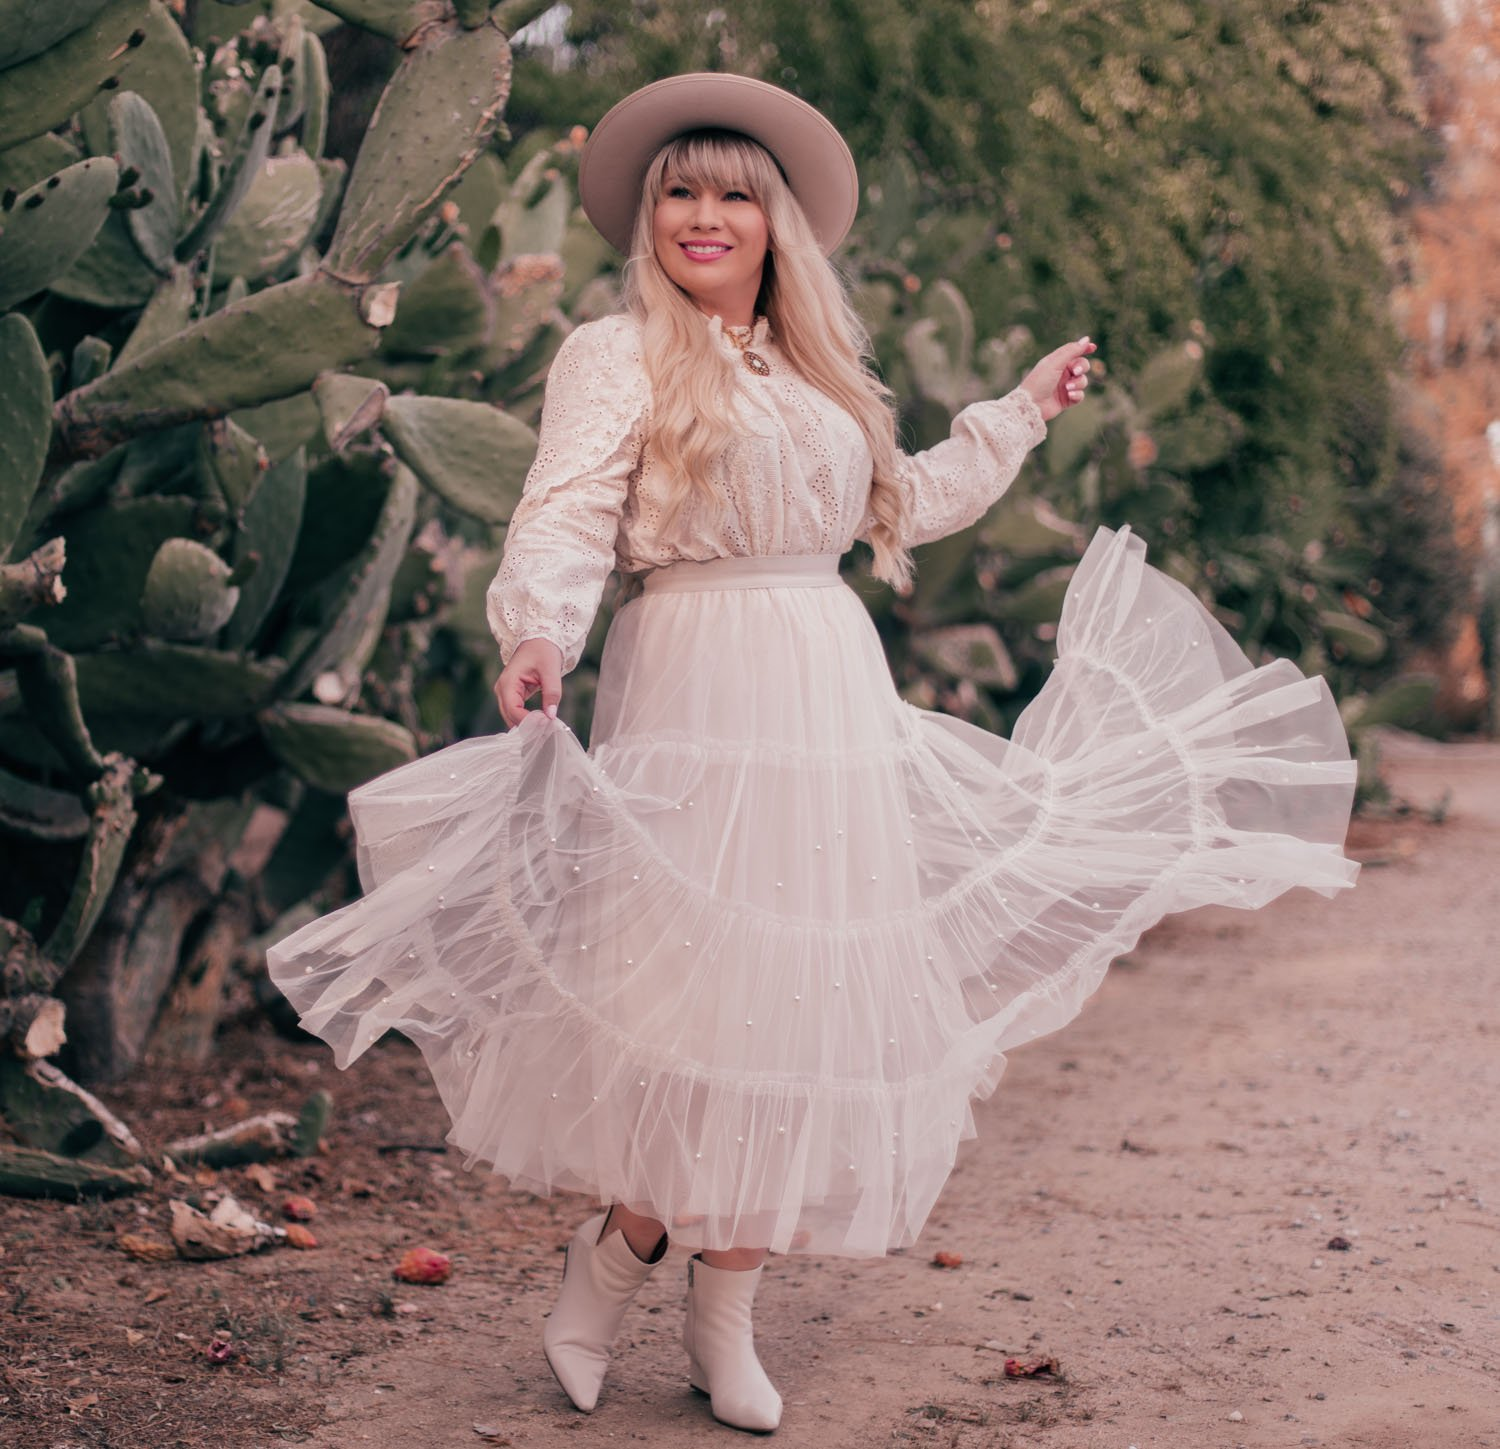 Fashion Blogger Elizabeth Hugen shares tips on How to Style a Rancher Hat in a Feminine Way and wears a Chicwish tulle skirt and Gigi Pip Monroe hat